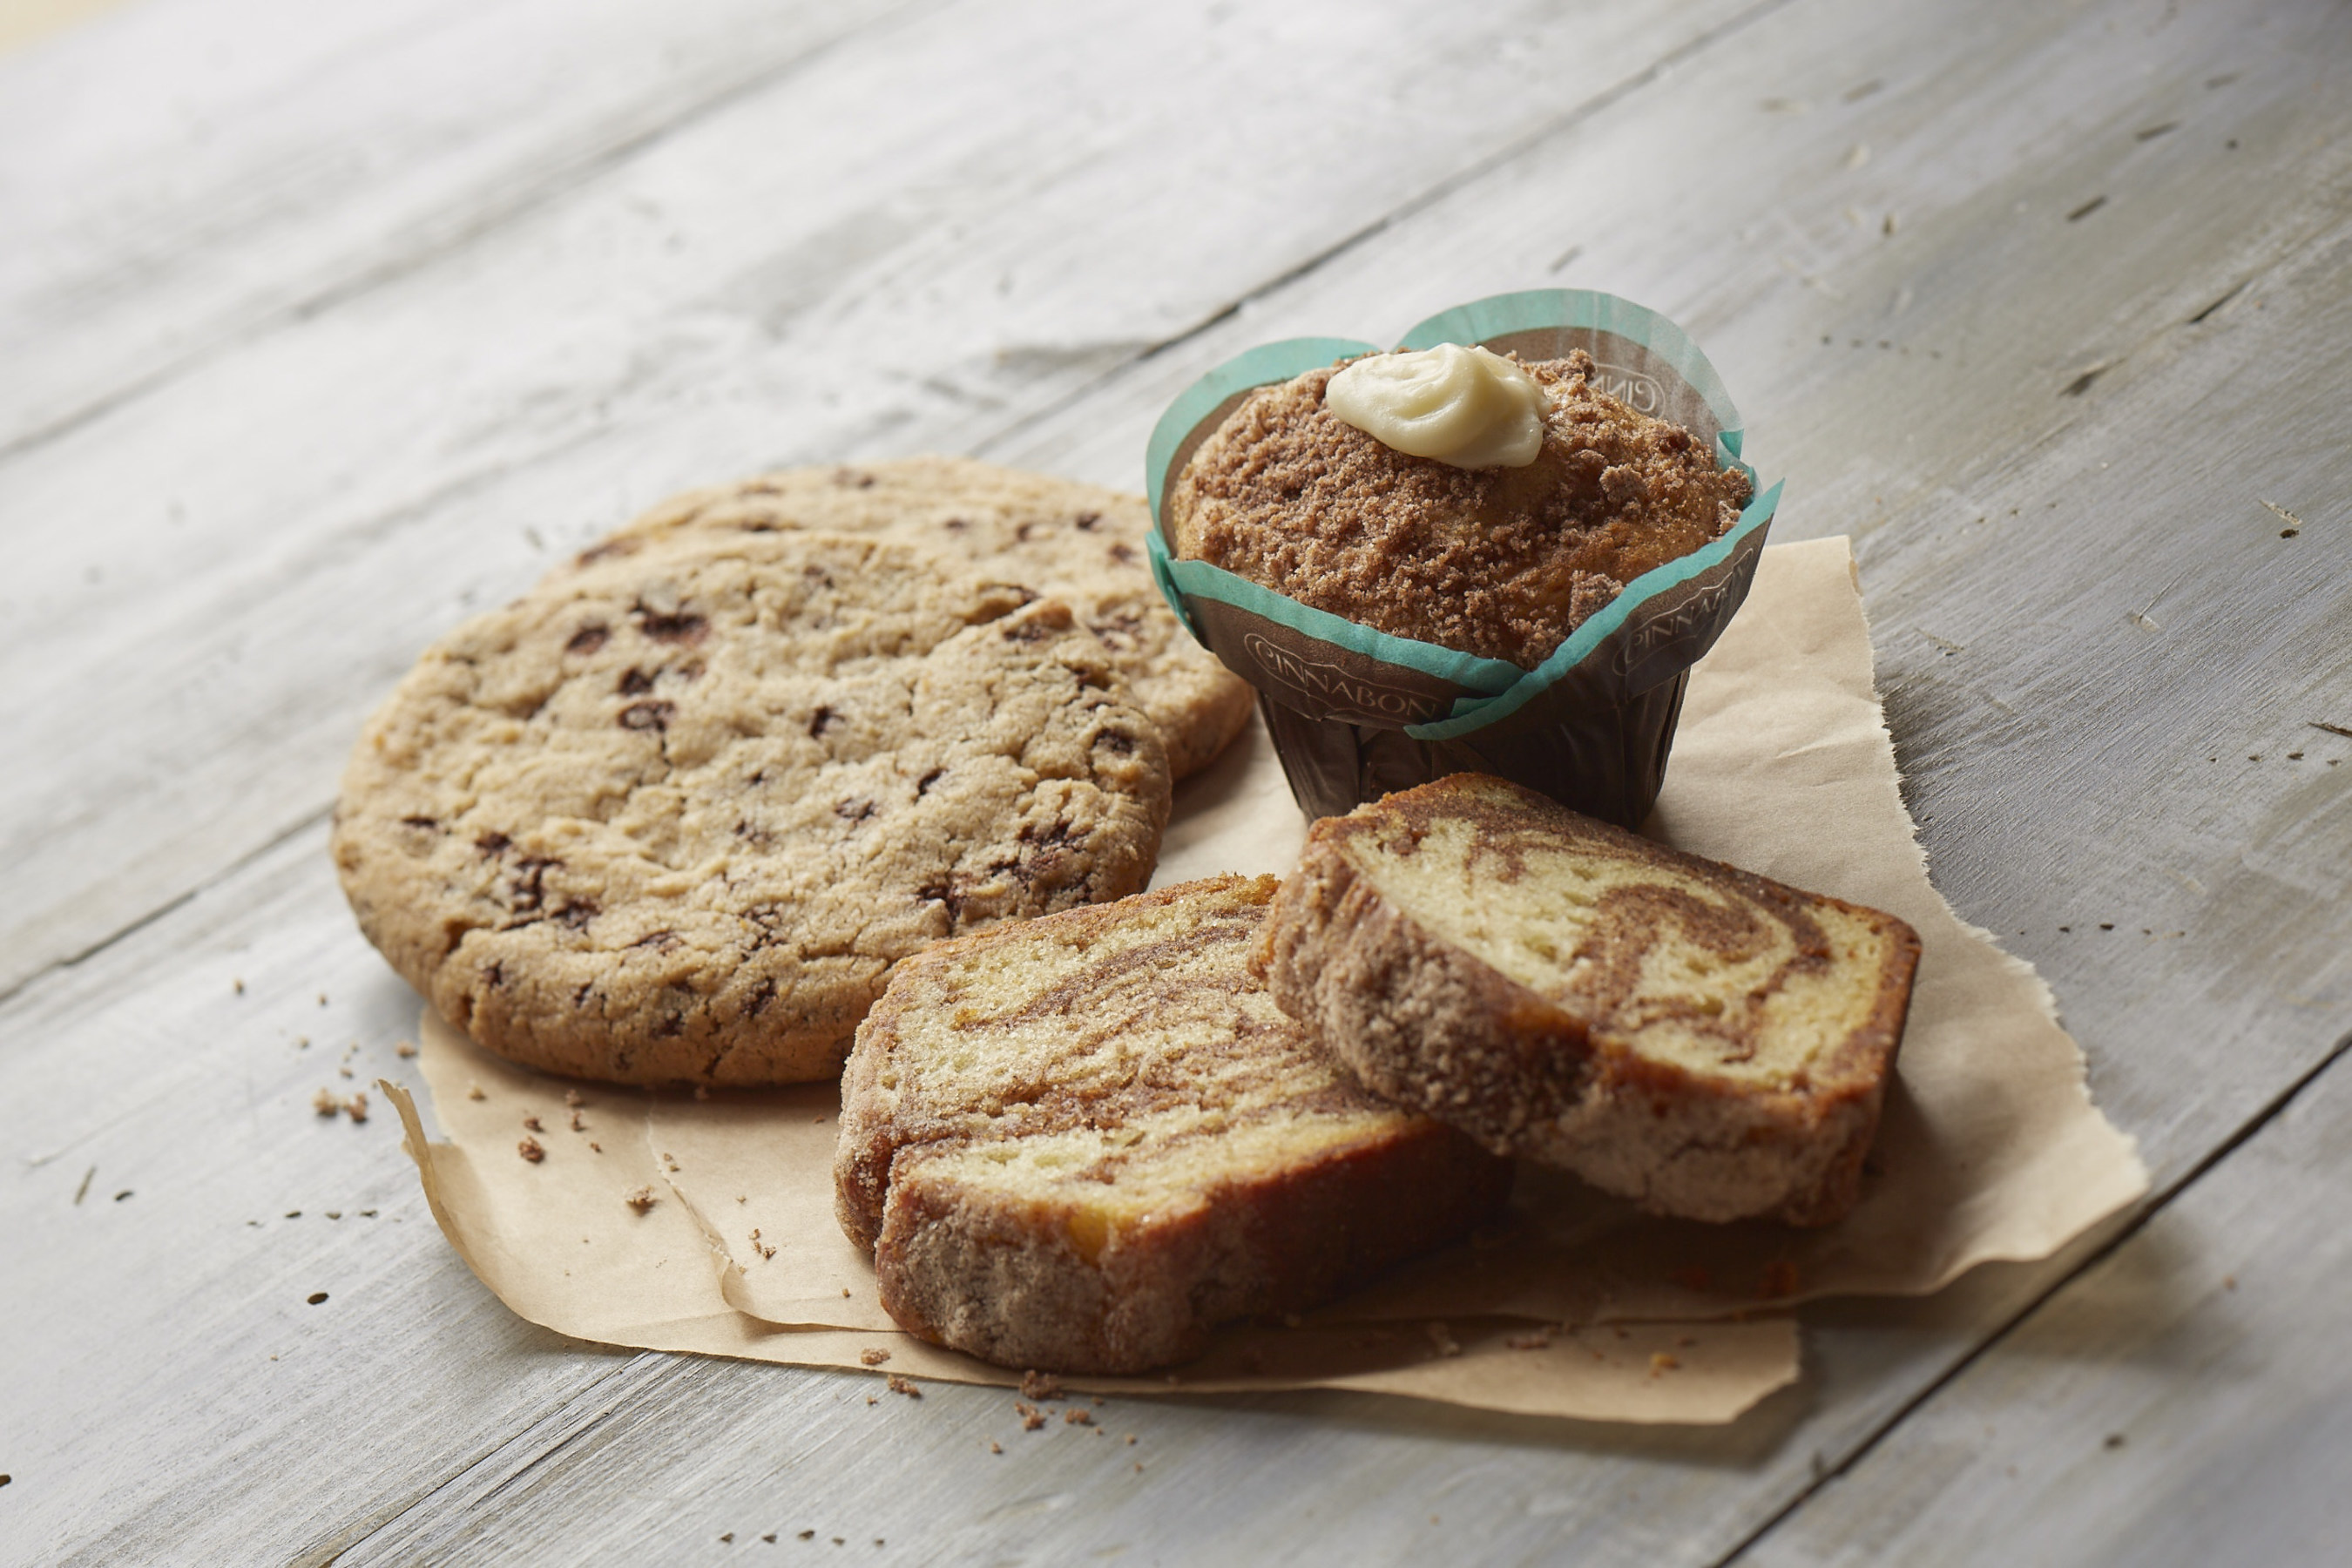 Cinnabon launches line of fresh baked treats at grocery, convenience stores, universities, and other foodservice and retail channels.